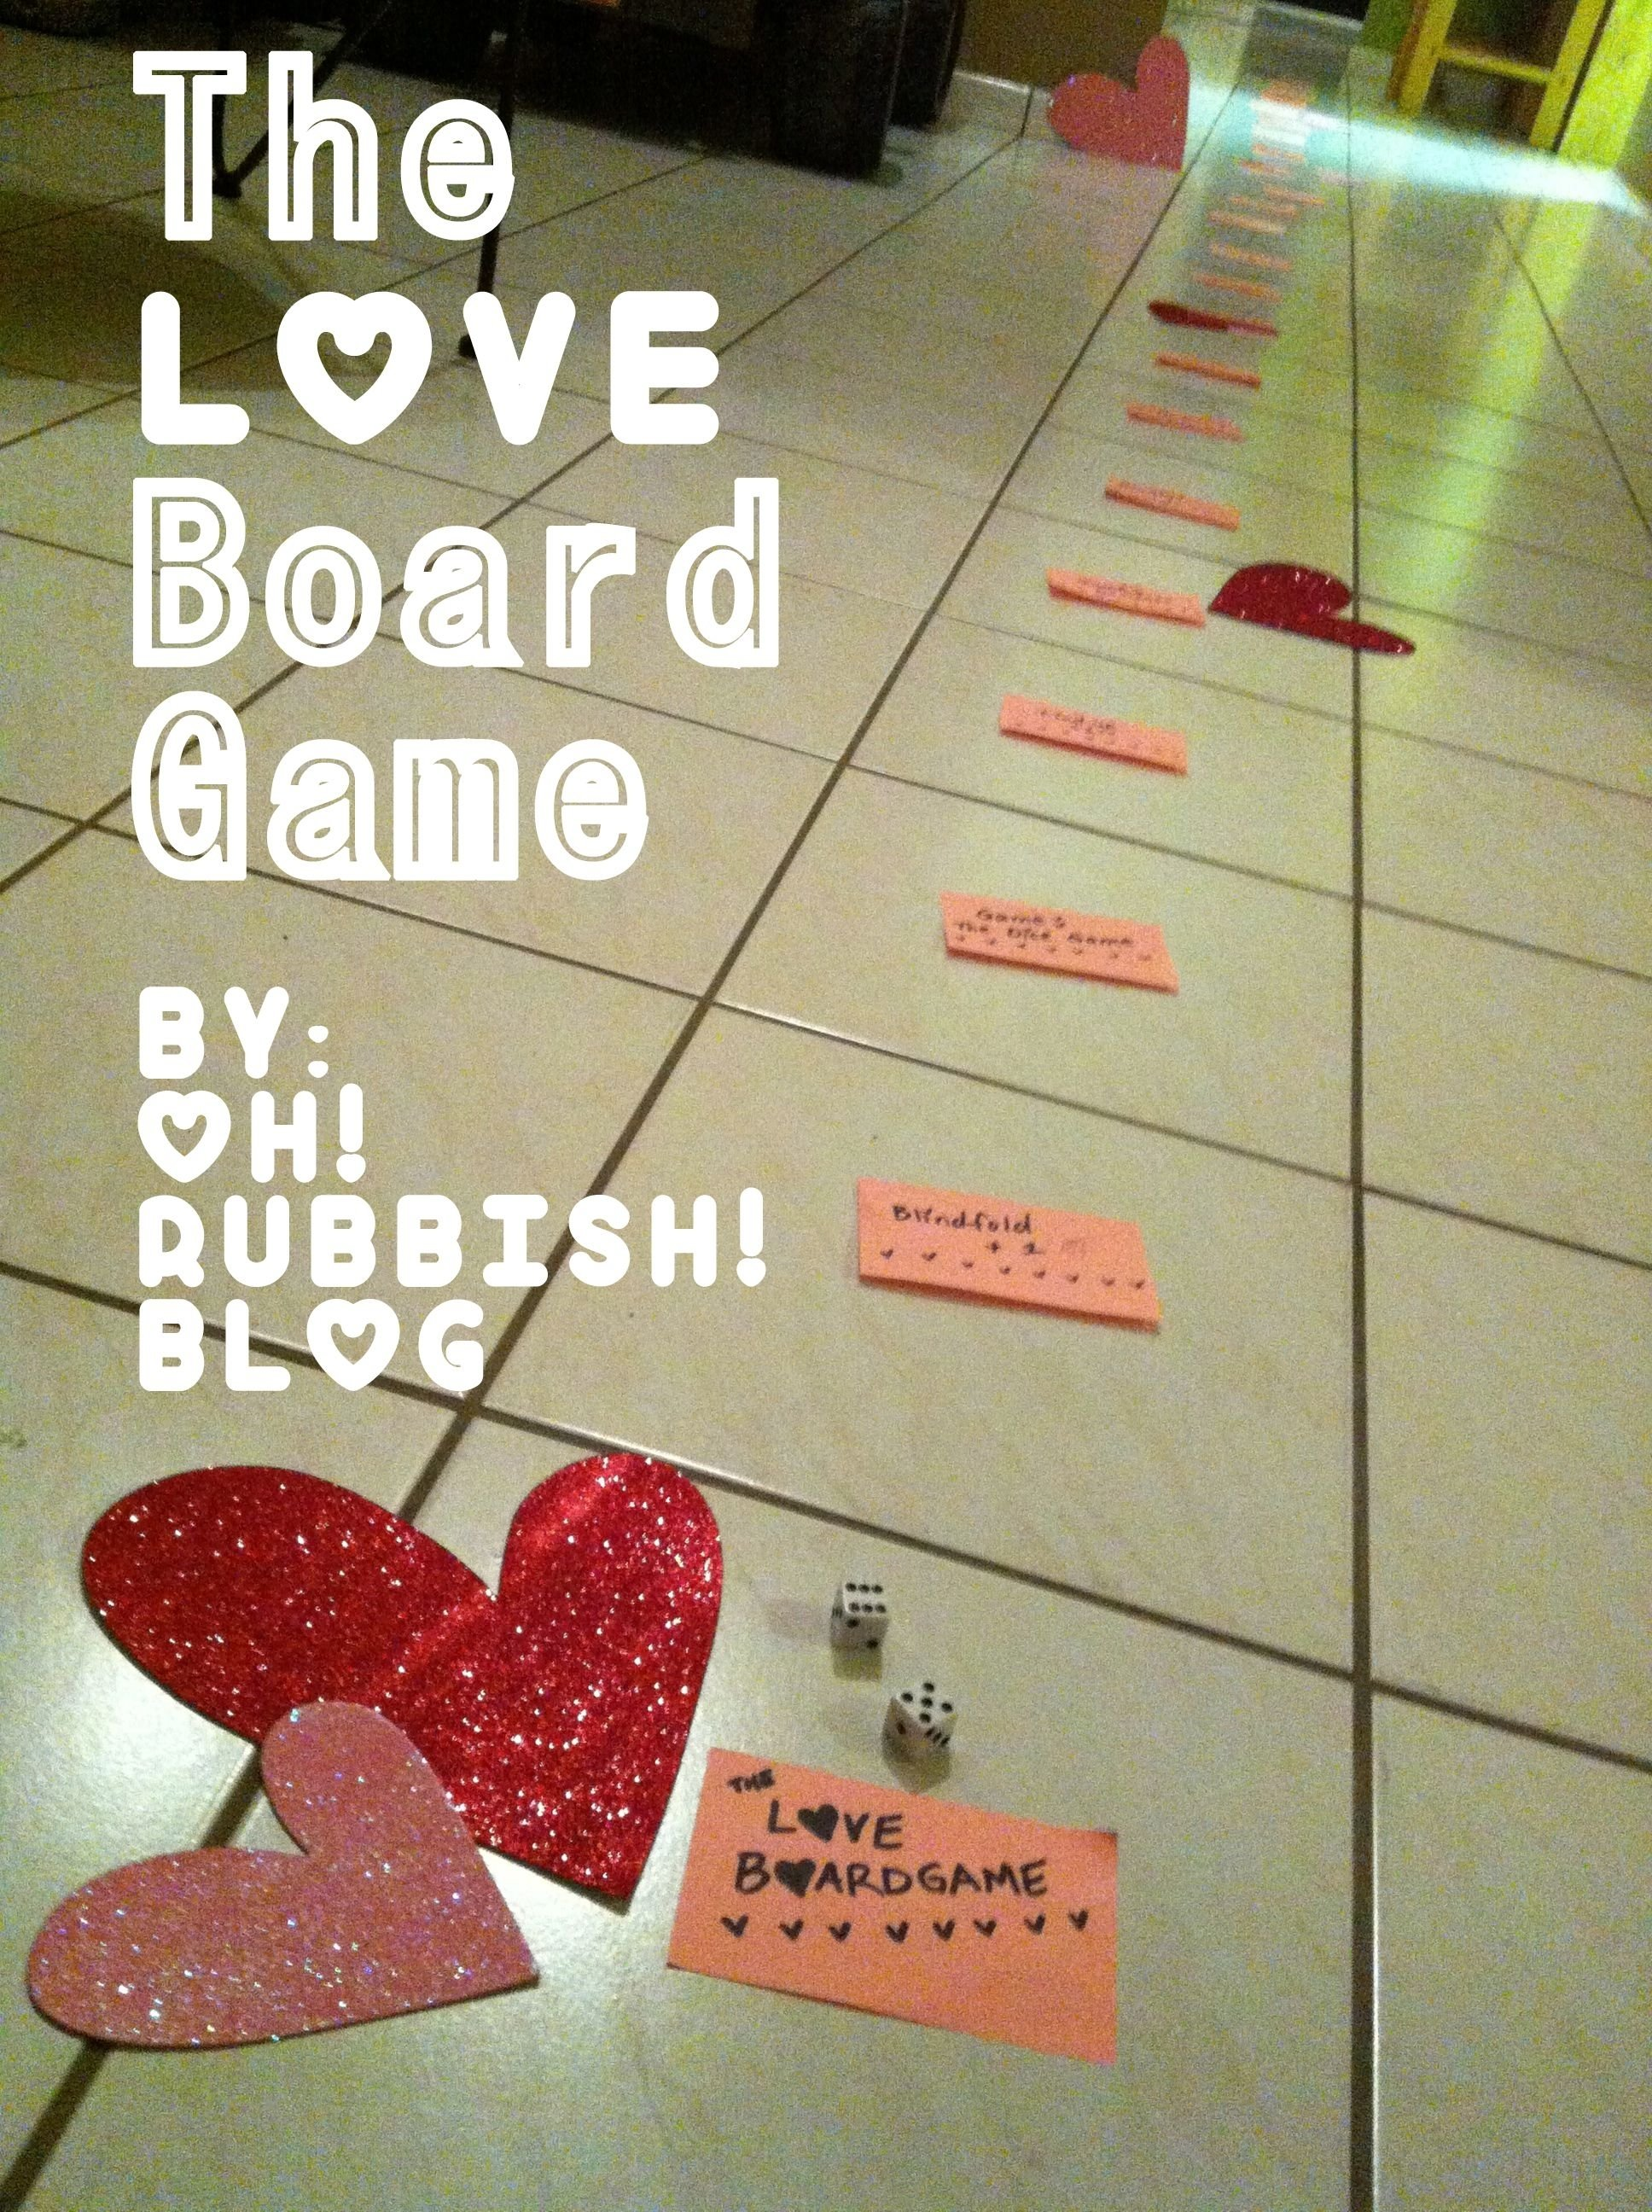 10 Perfect First Valentines Day Ideas For Boyfriend the love board game valentine game for couples valentine day 9 2020